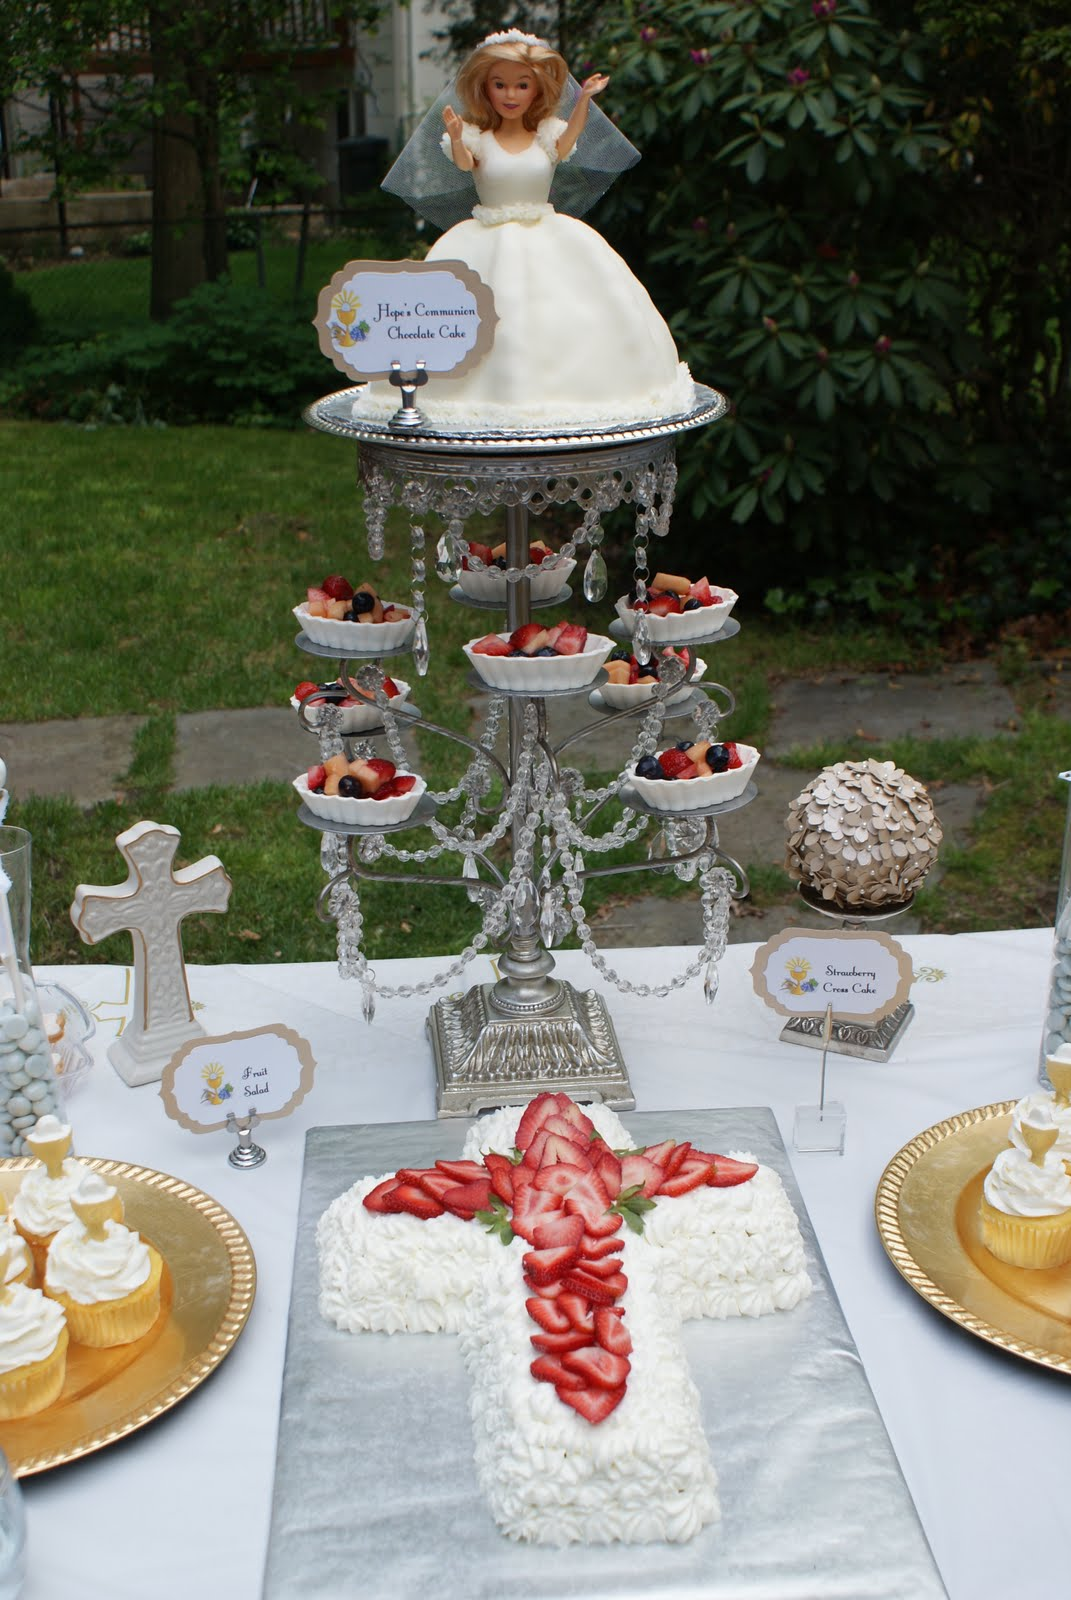 how to decorate a wedding reception simple holy communion cake ideas 4909 communion idea 4909